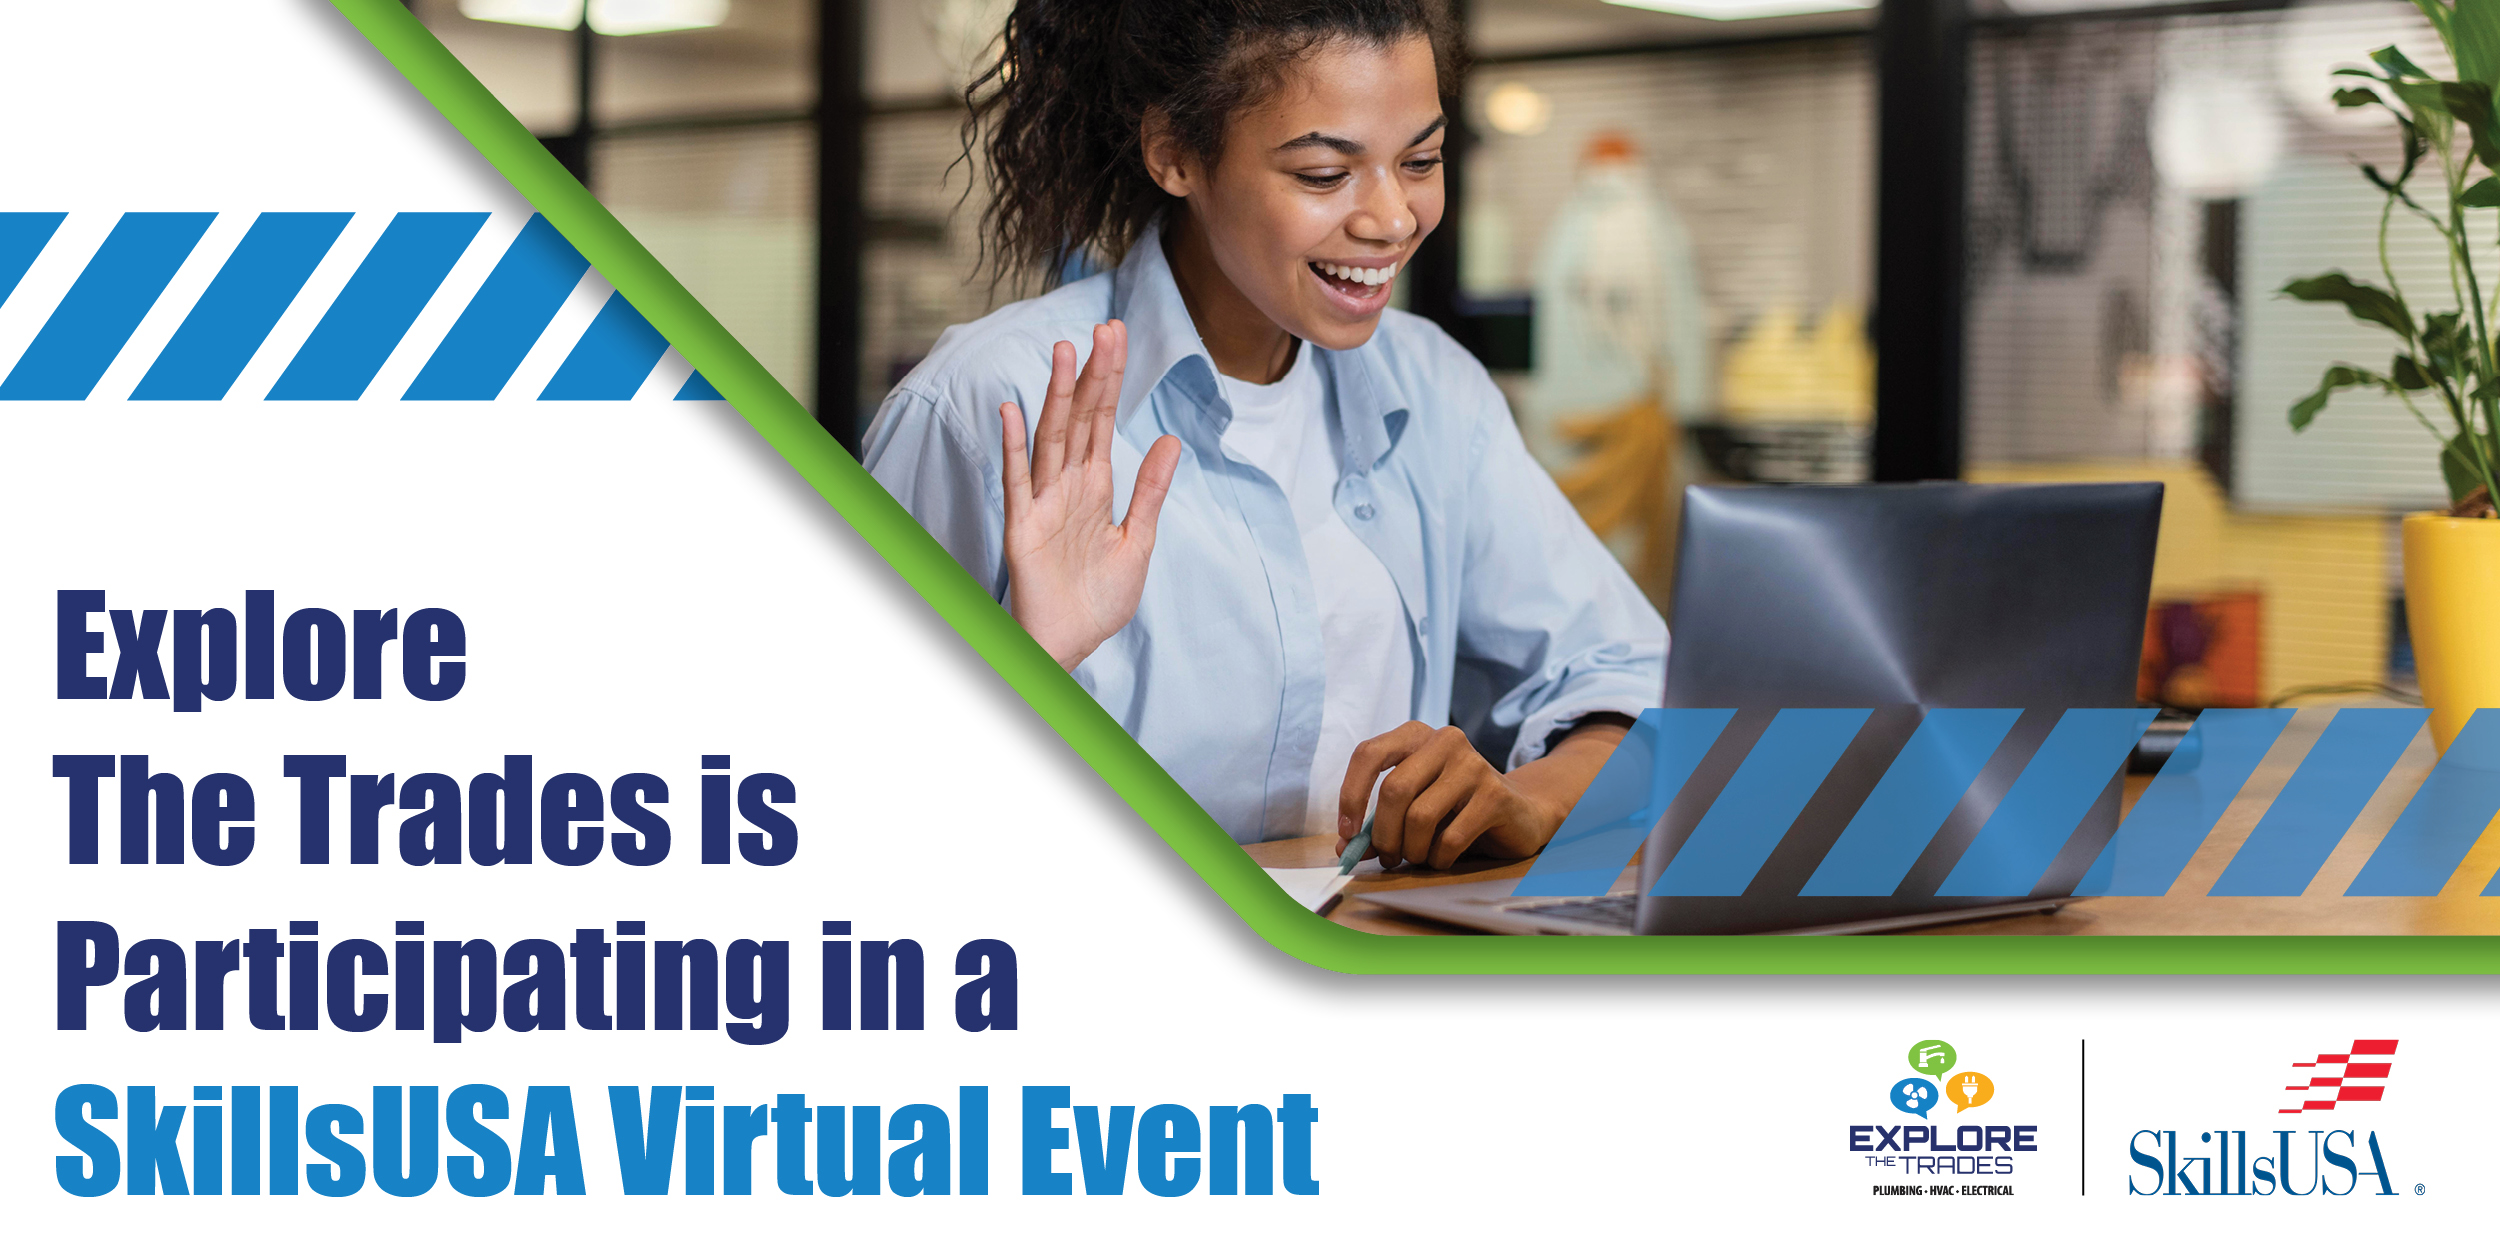 Explore The Trades Participates In The SkillsUSA National Leadership & Skills Virtual Event featured image